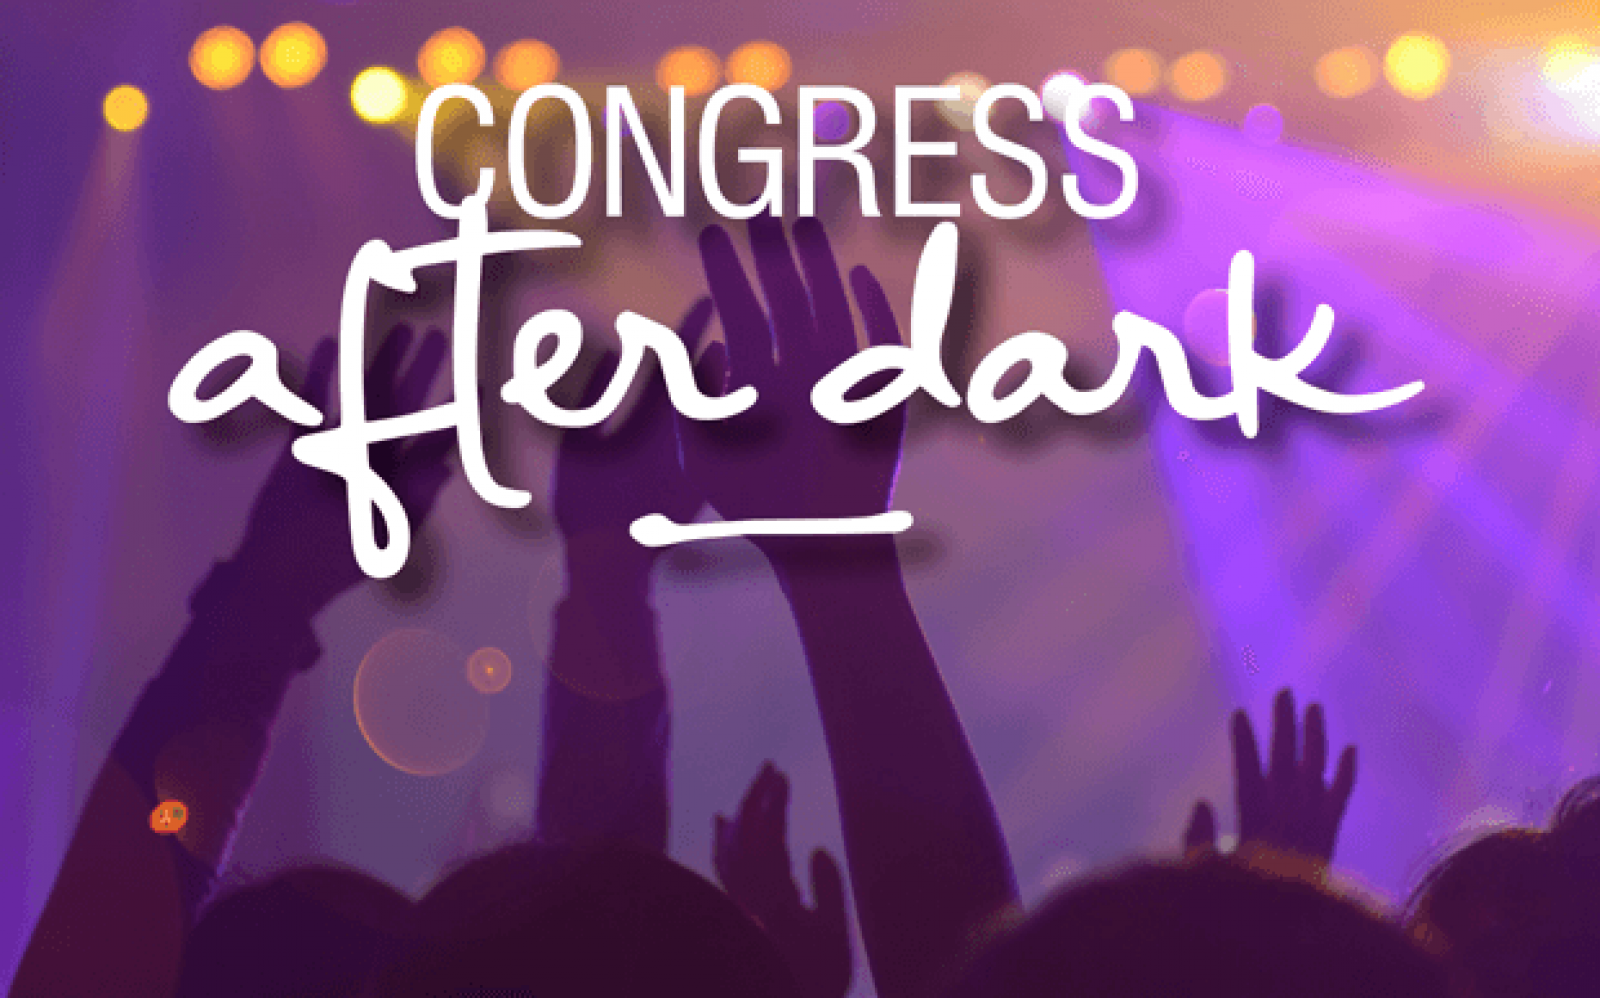 Congress 'After Dark'